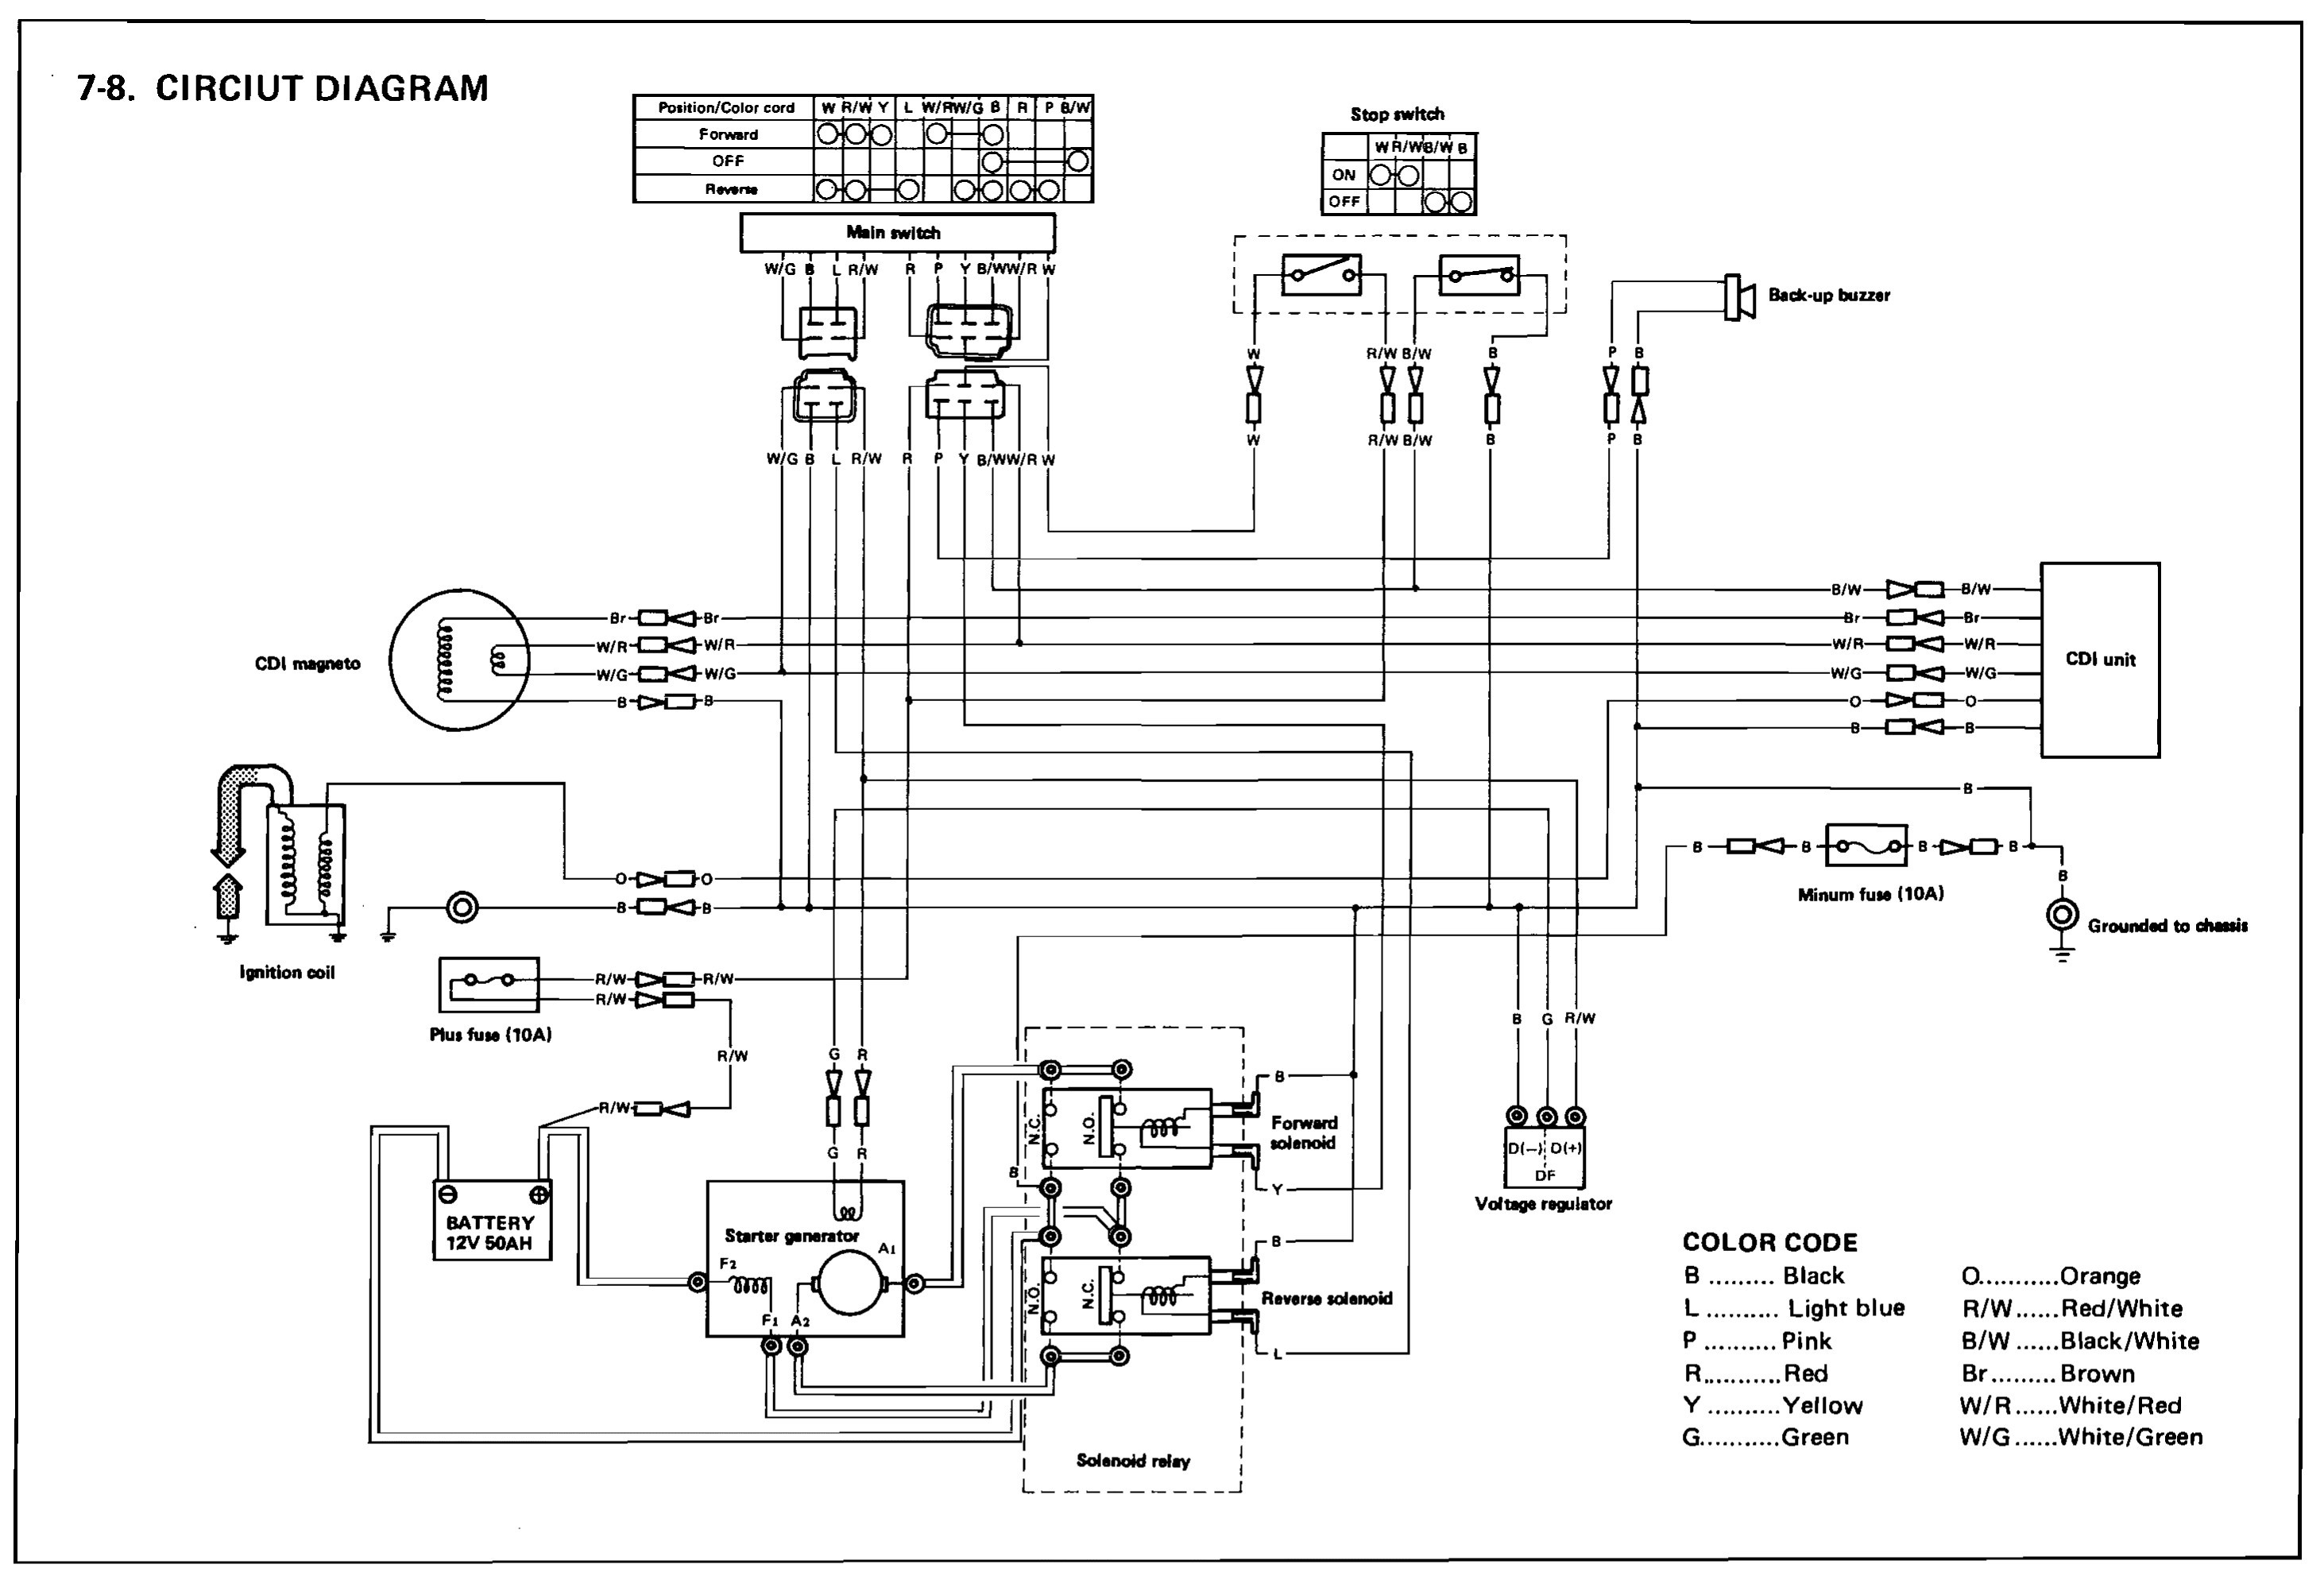 Club Car Wiring Diagram Starter Solenoid on suzuki sx4 radio wiring diagram